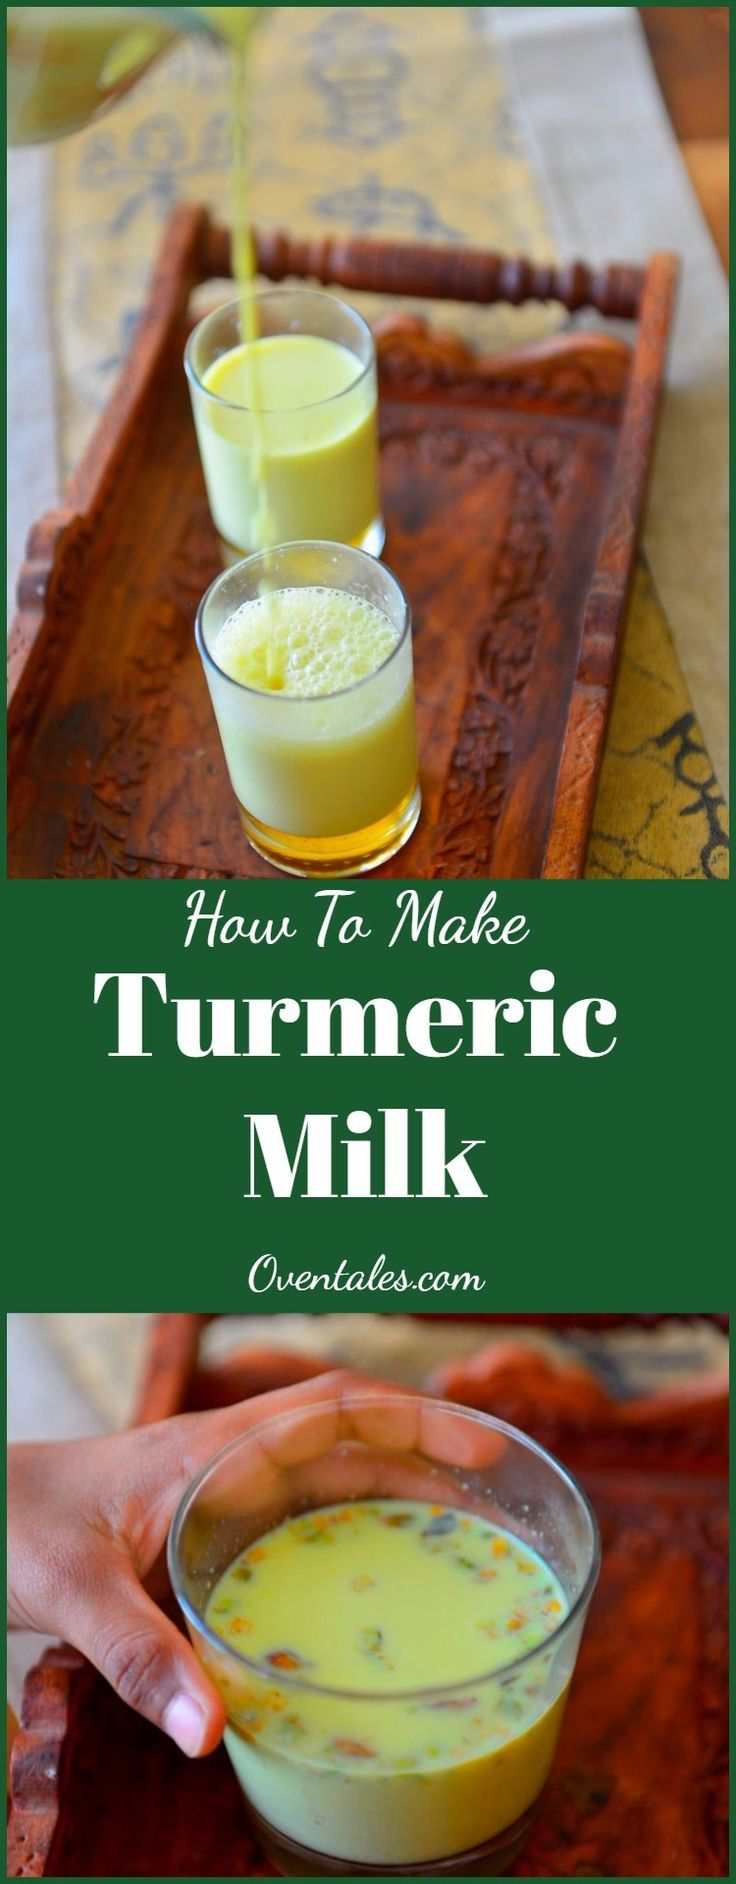 Turmeric Milk or  Haldi Ka Doodh or Turmeric latte is  this  magical  concoction  used  to  ward of  the  worst of  cold and flu season. A pinch of  turmeric and  pepper gives the  immunity boost that we need.  Here is a  version  with  few added spices  to increase its  potency while making it appealing  to even  the pickiest  eaters.